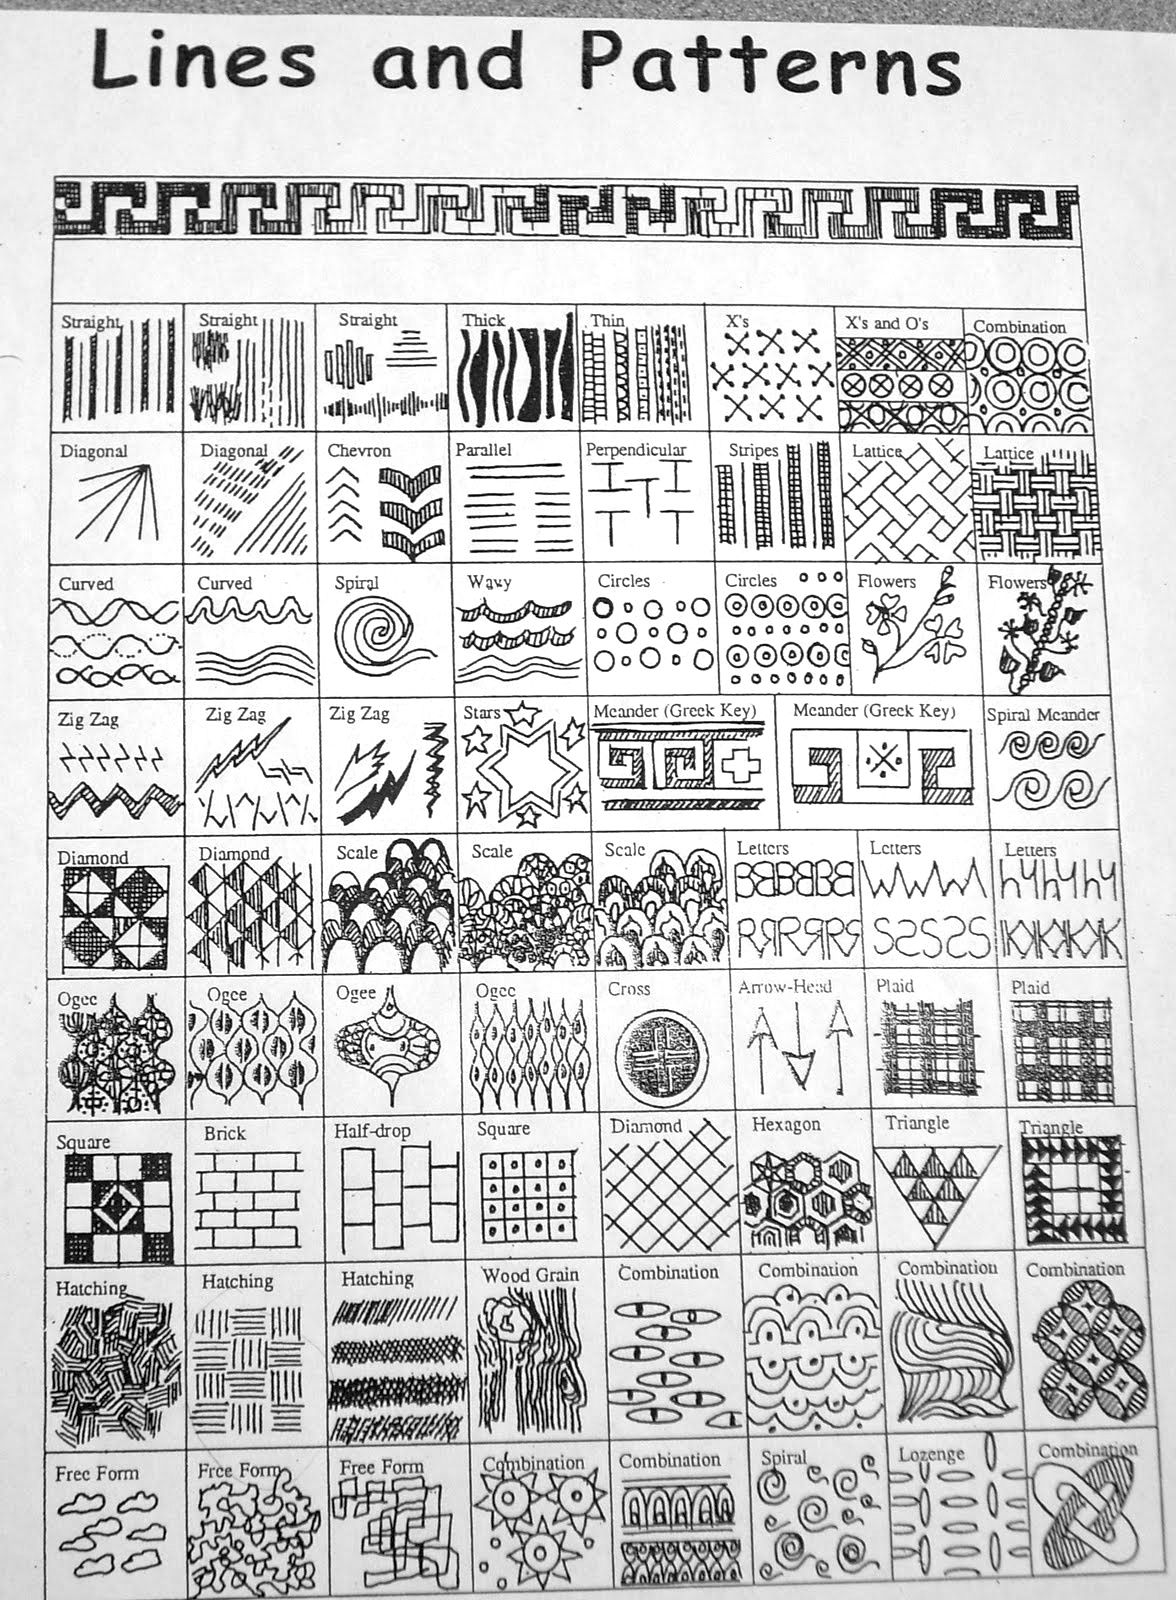 Line And Pattern Poster Name The Patterns And Lines That You Use